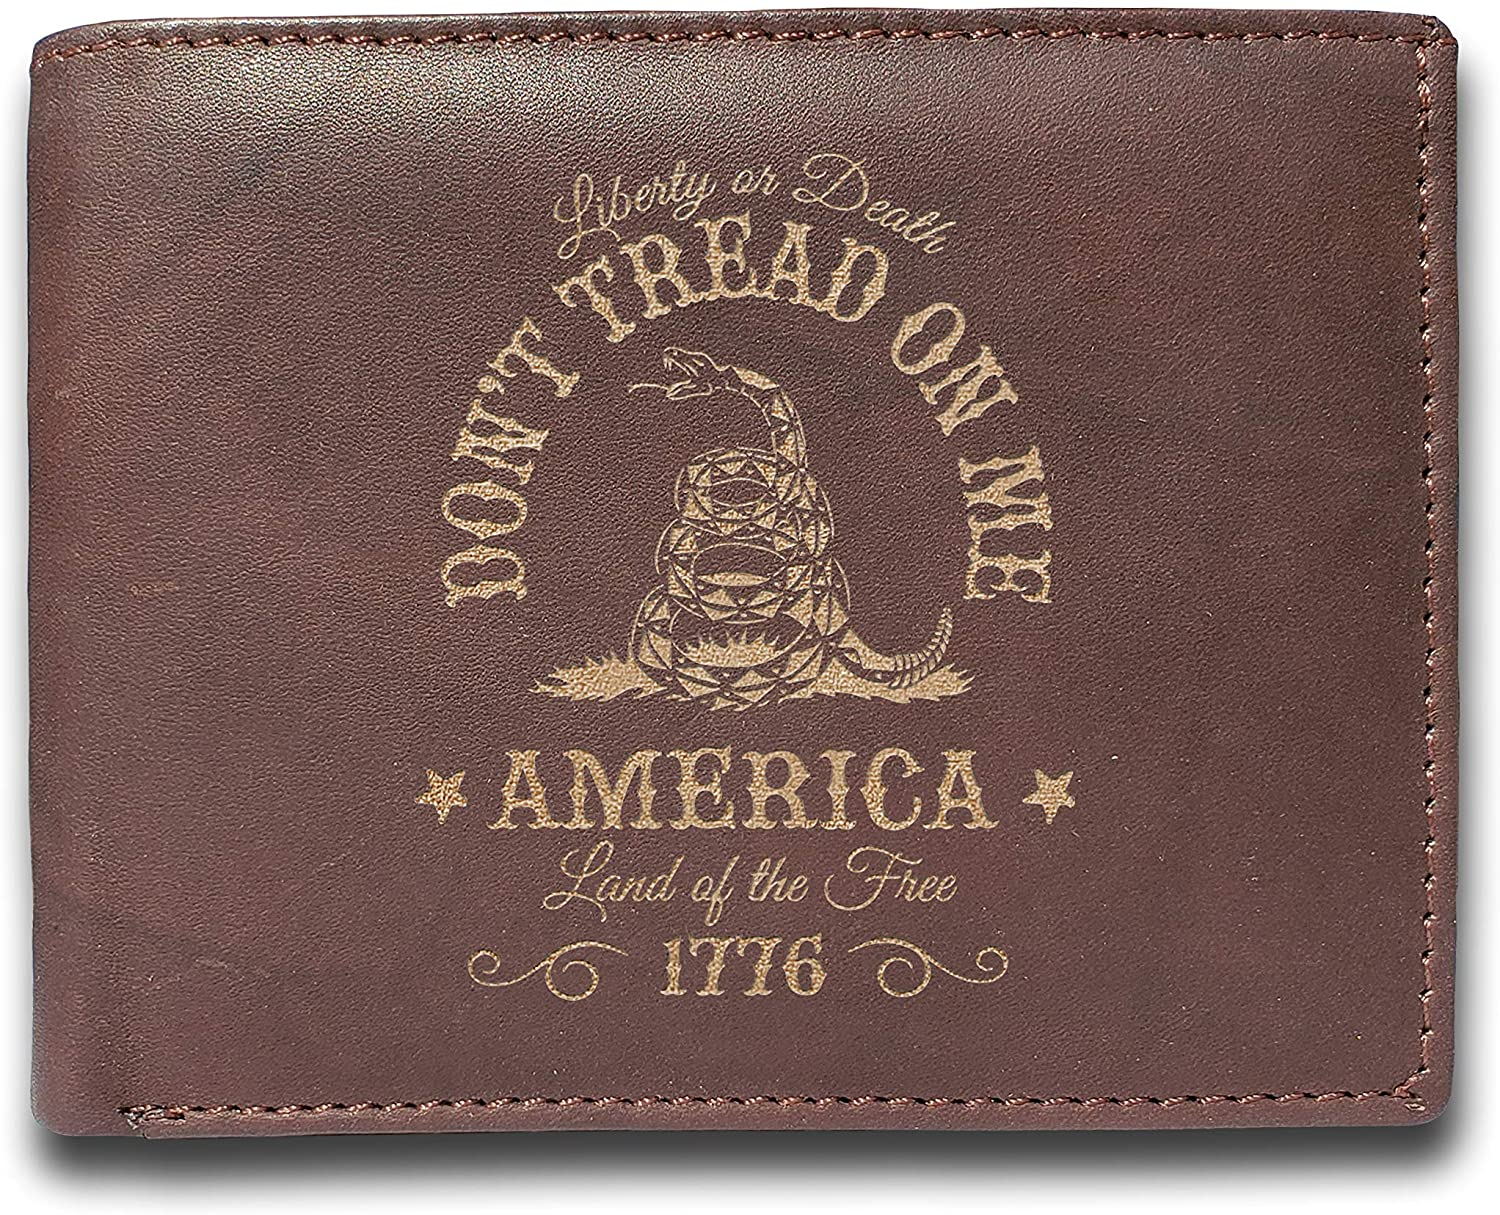 LIBERTY or DEATH- DON'T TREAD ON ME - AMERICA Land of the Free III PERCENTERS - A Perfect Gift for Him - Leather Laser Engraved Slimfold Men's Wallet - Slim 14 Pocket - Unique Present by Liam Carlton